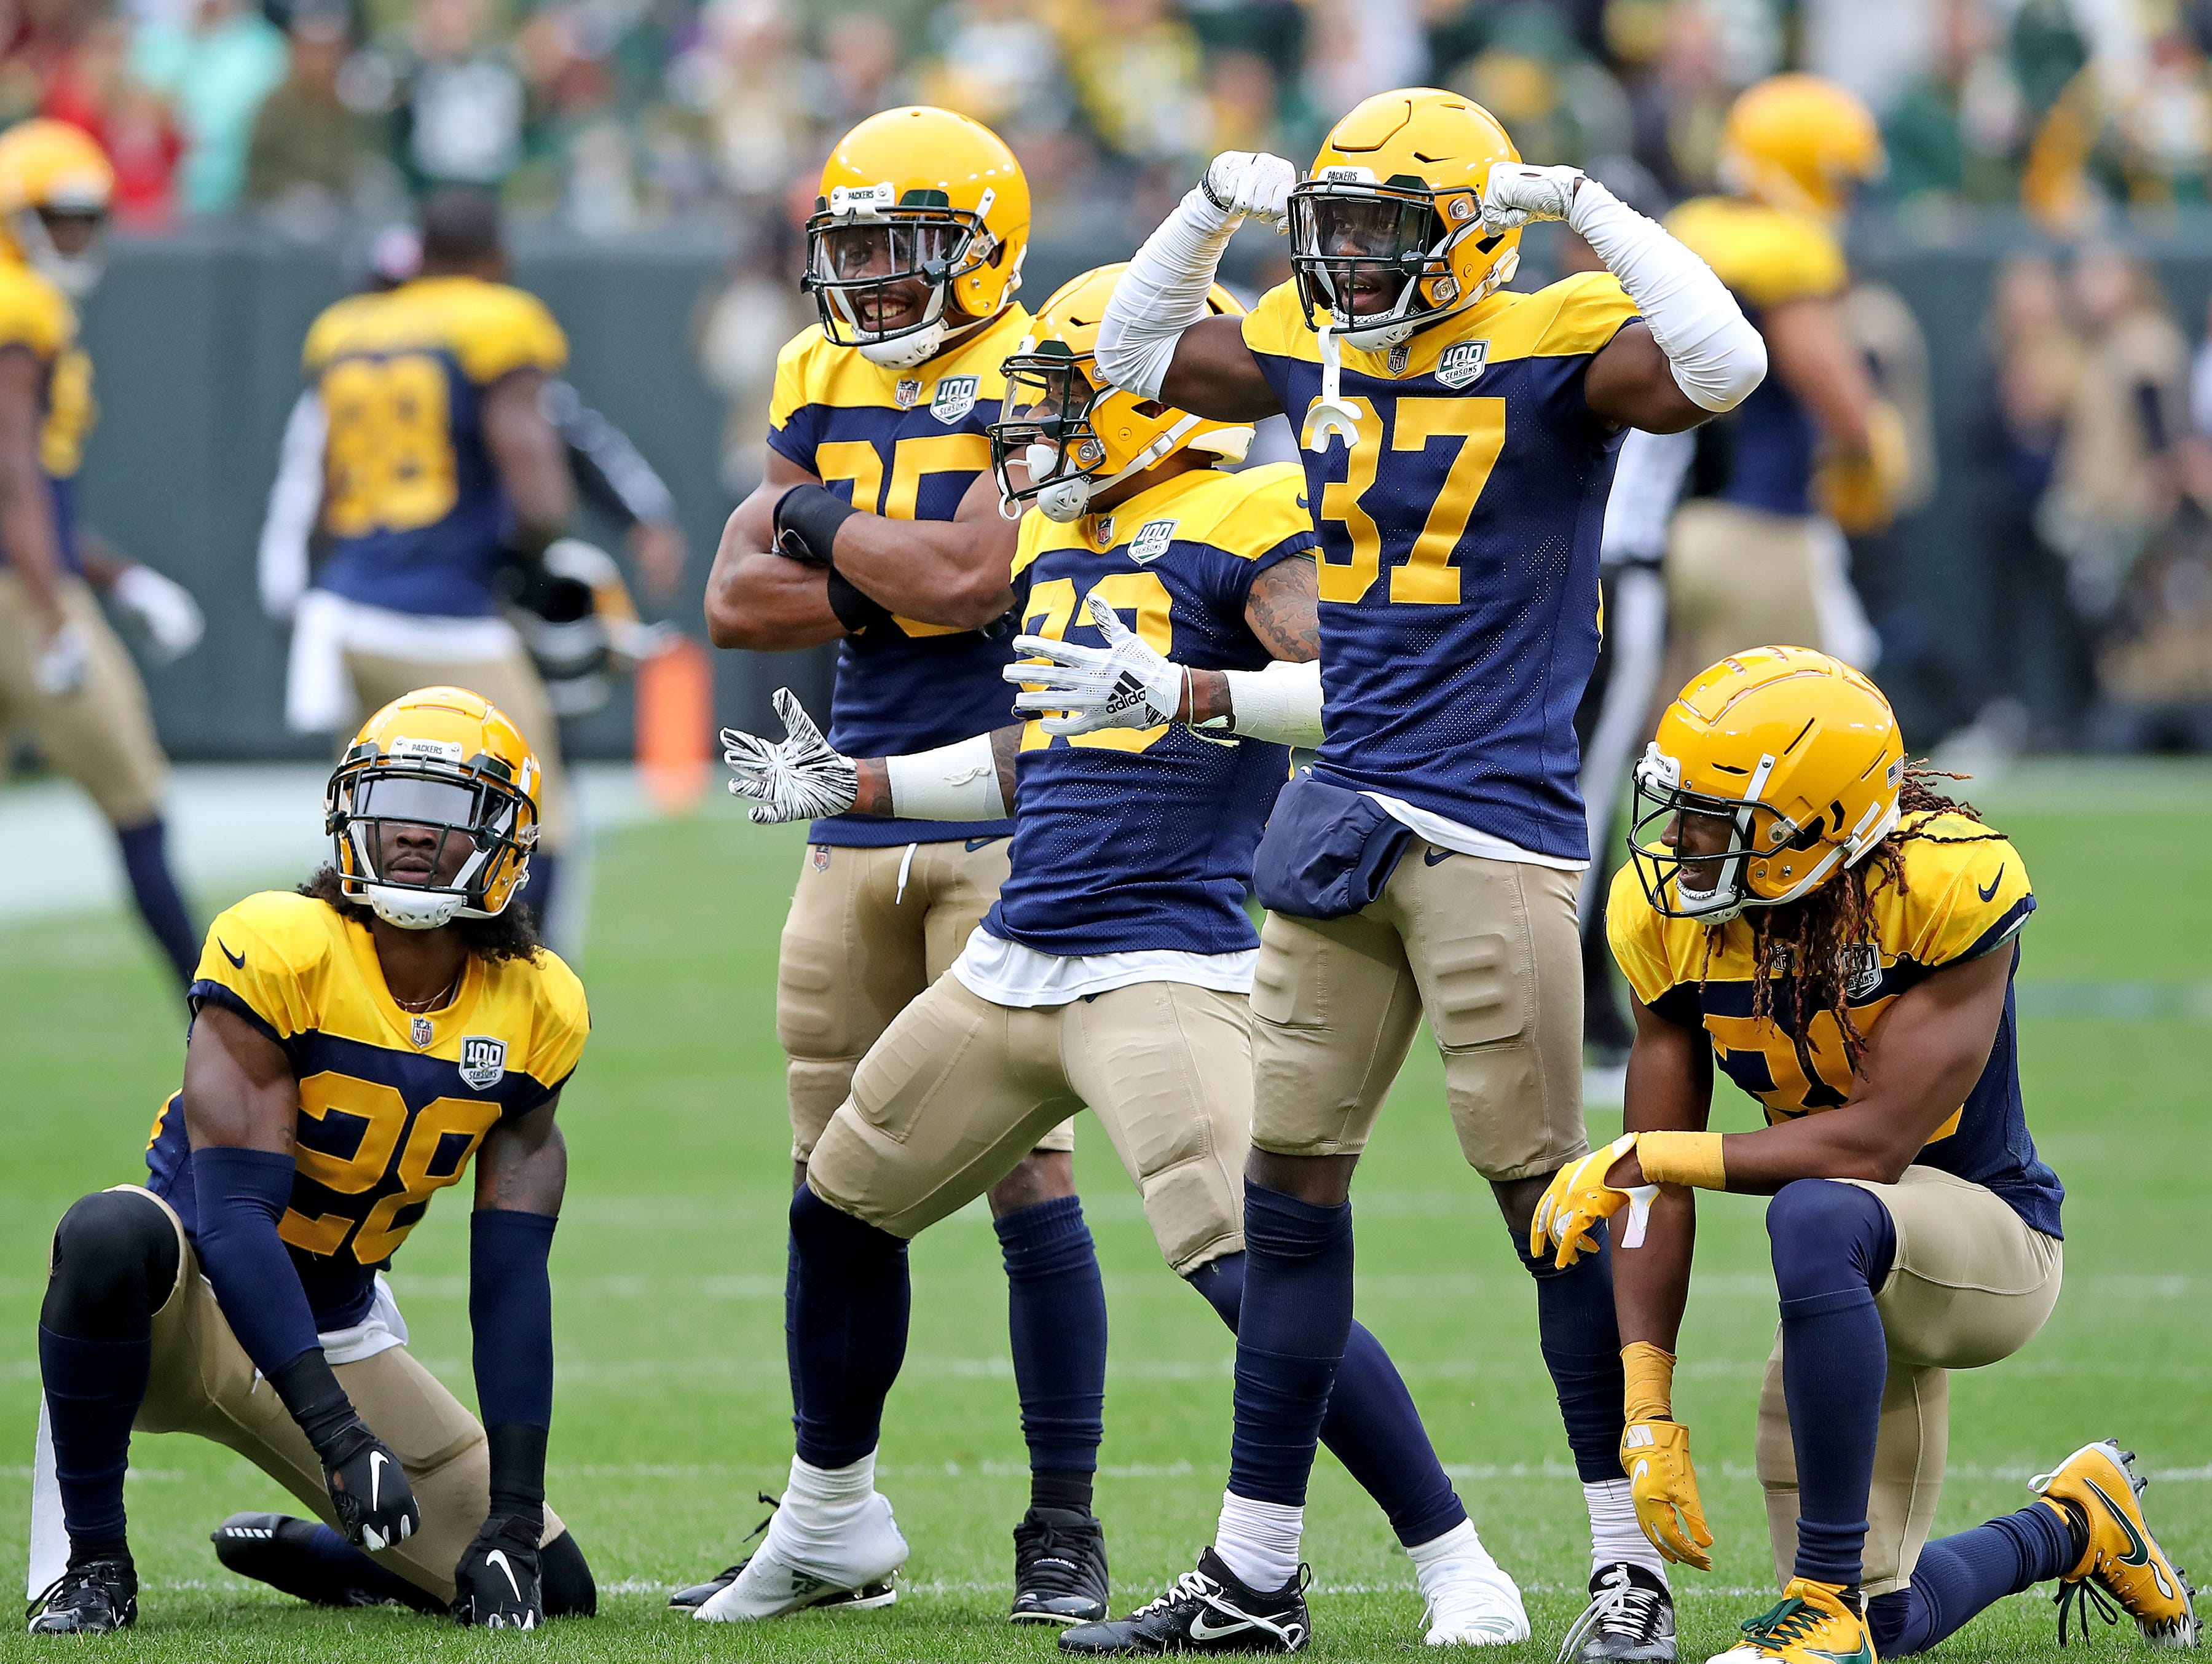 Green Bay Packers cornerback Jaire Alexander (23) and the rest of the defensive backfield celebrates his interception against the Buffalo Bills Sunday September 30, 2018 at Lambeau Field in Green Bay, Wis.